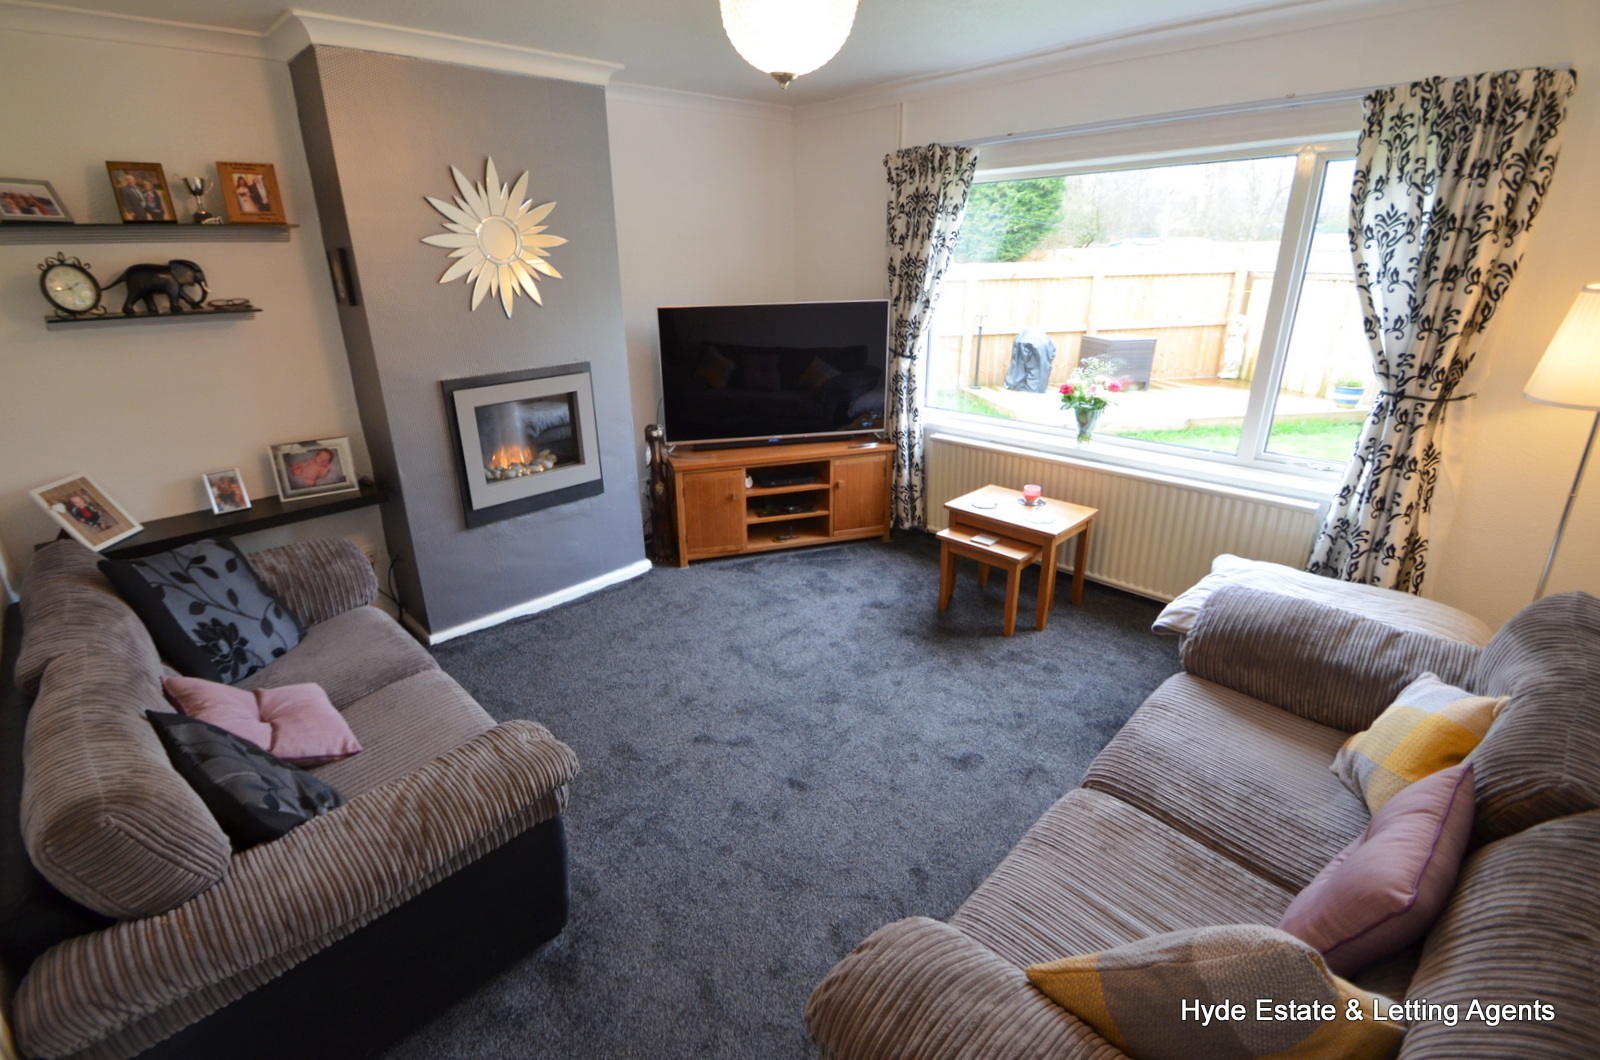 Images for Heywood Road, Prestwich, Manchester, M25 2RW